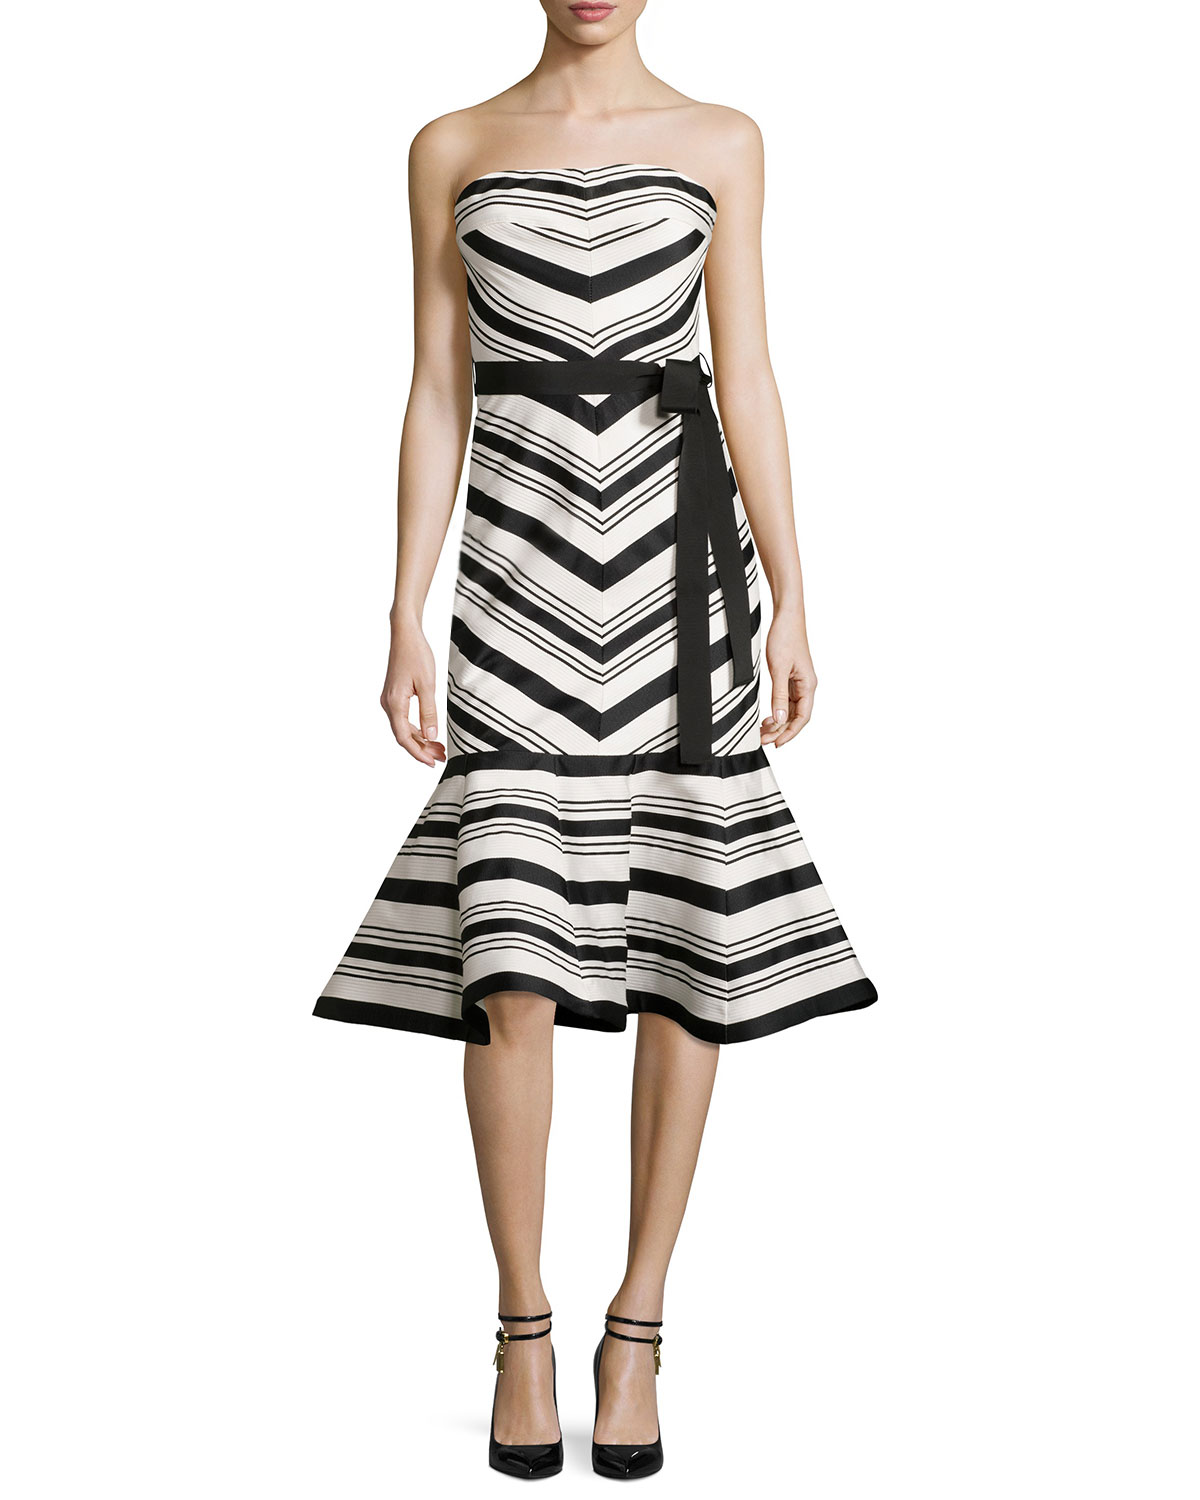 Kirsten Striped Strapless Cocktail Dress, Black/White